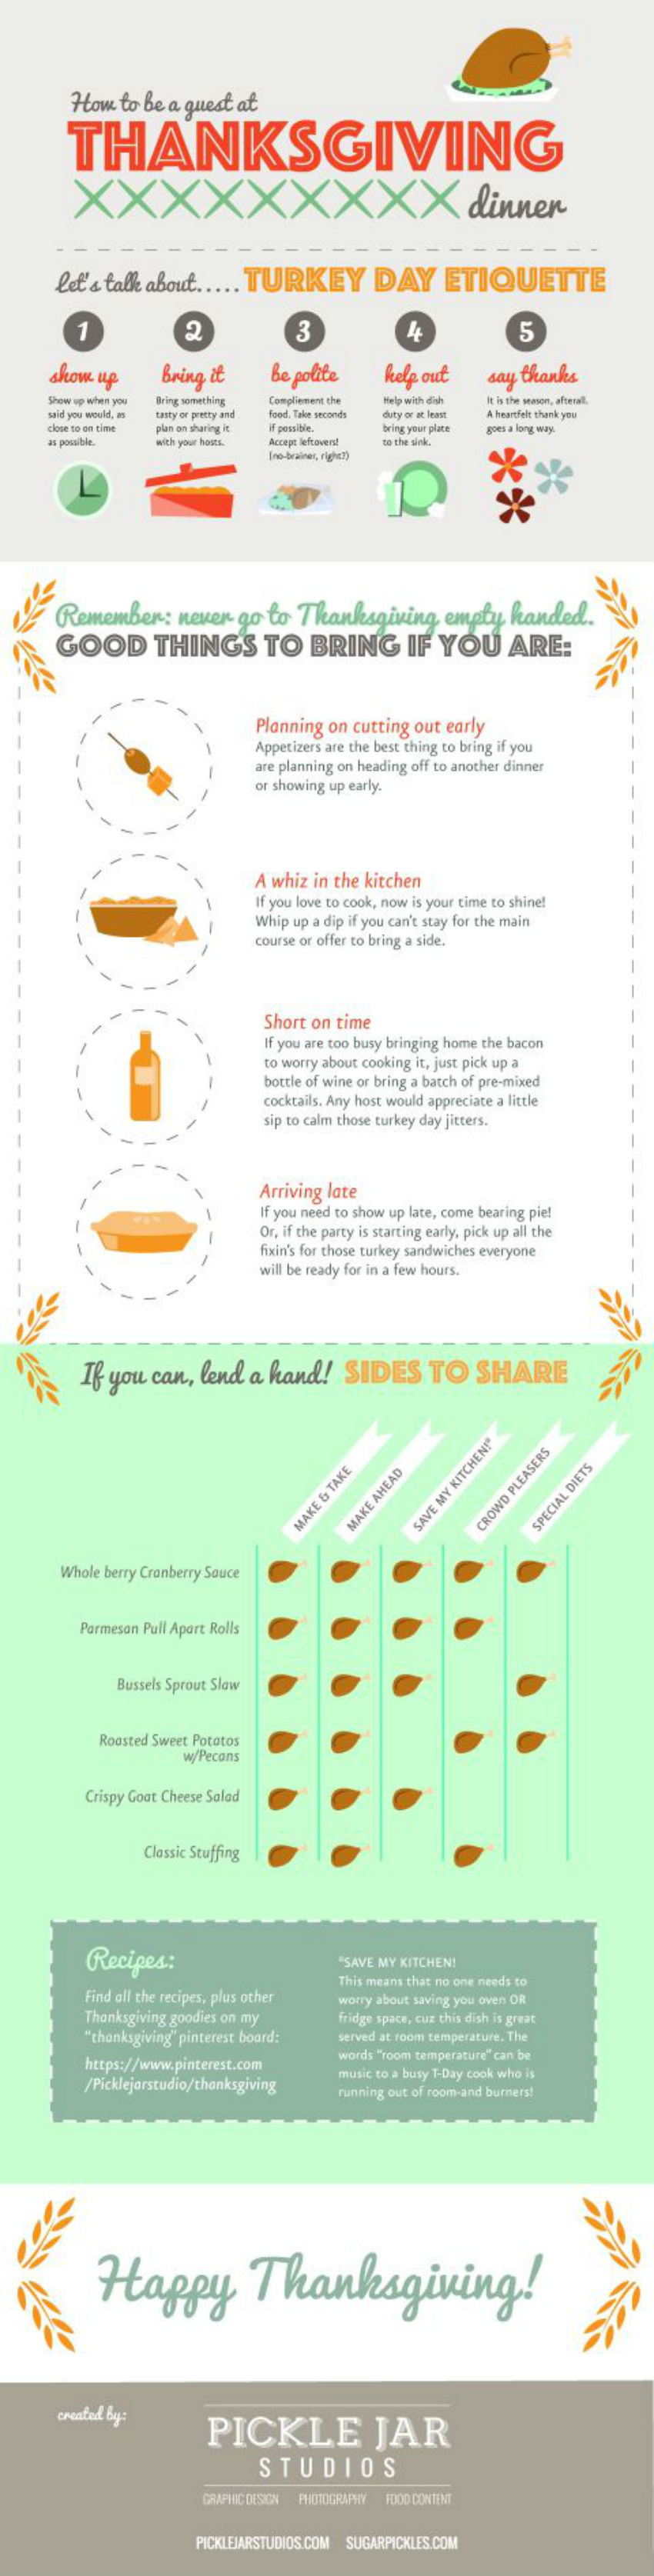 These tips will help you get invited next year. Image Source: Country Living